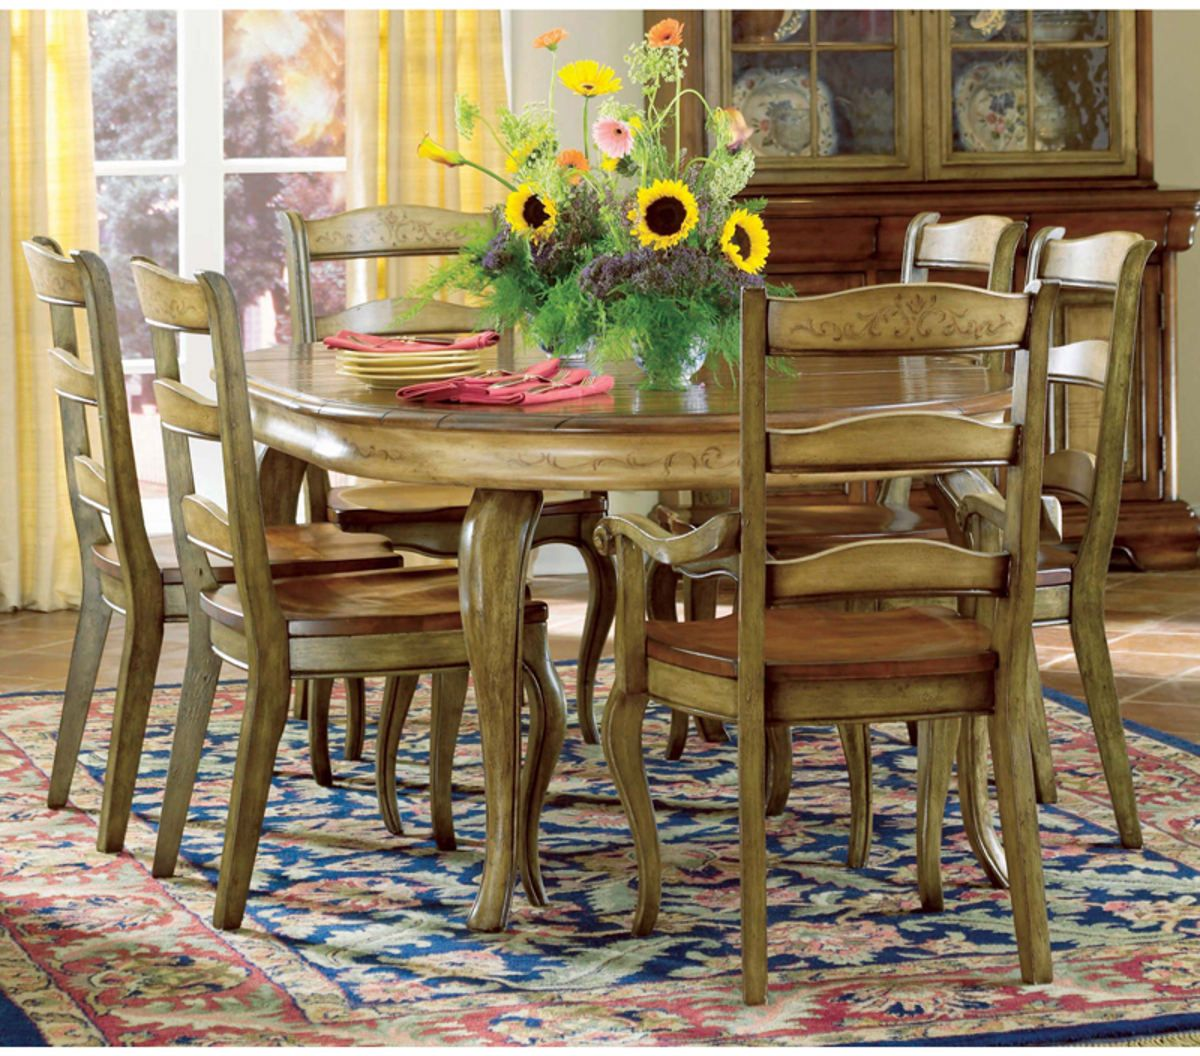 Hand Painted Dining Room Furniture   Modern Italian Furniture Check More At  Http://searchfororangecountyhomes.com/hand Painted Dining Room Furniture/